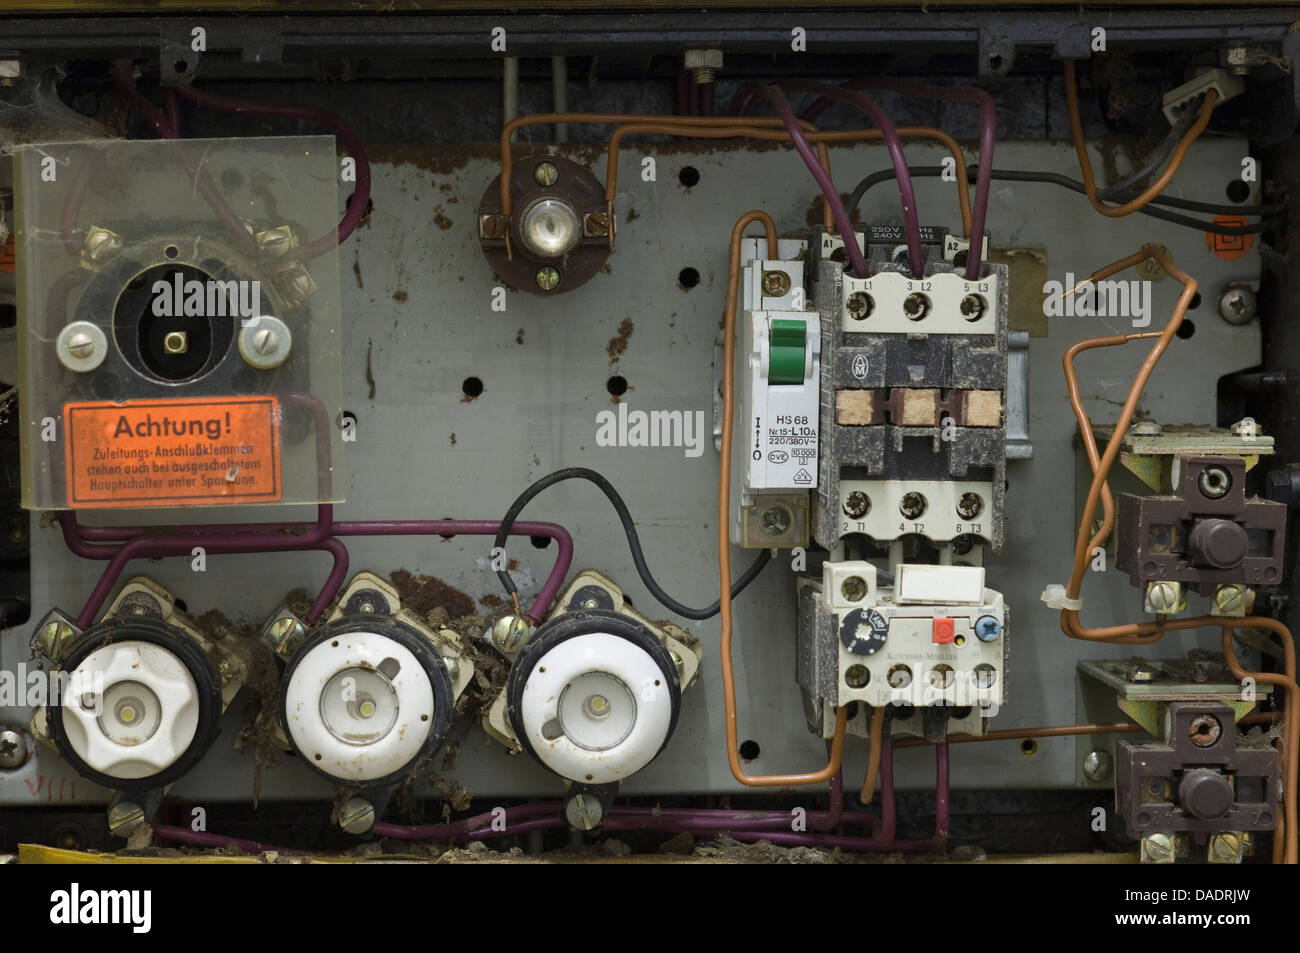 germany antique old ruined fuse box stock photo royalty free image rh alamy com Old Electrical Fuse Panels antique fuse boxes for sale